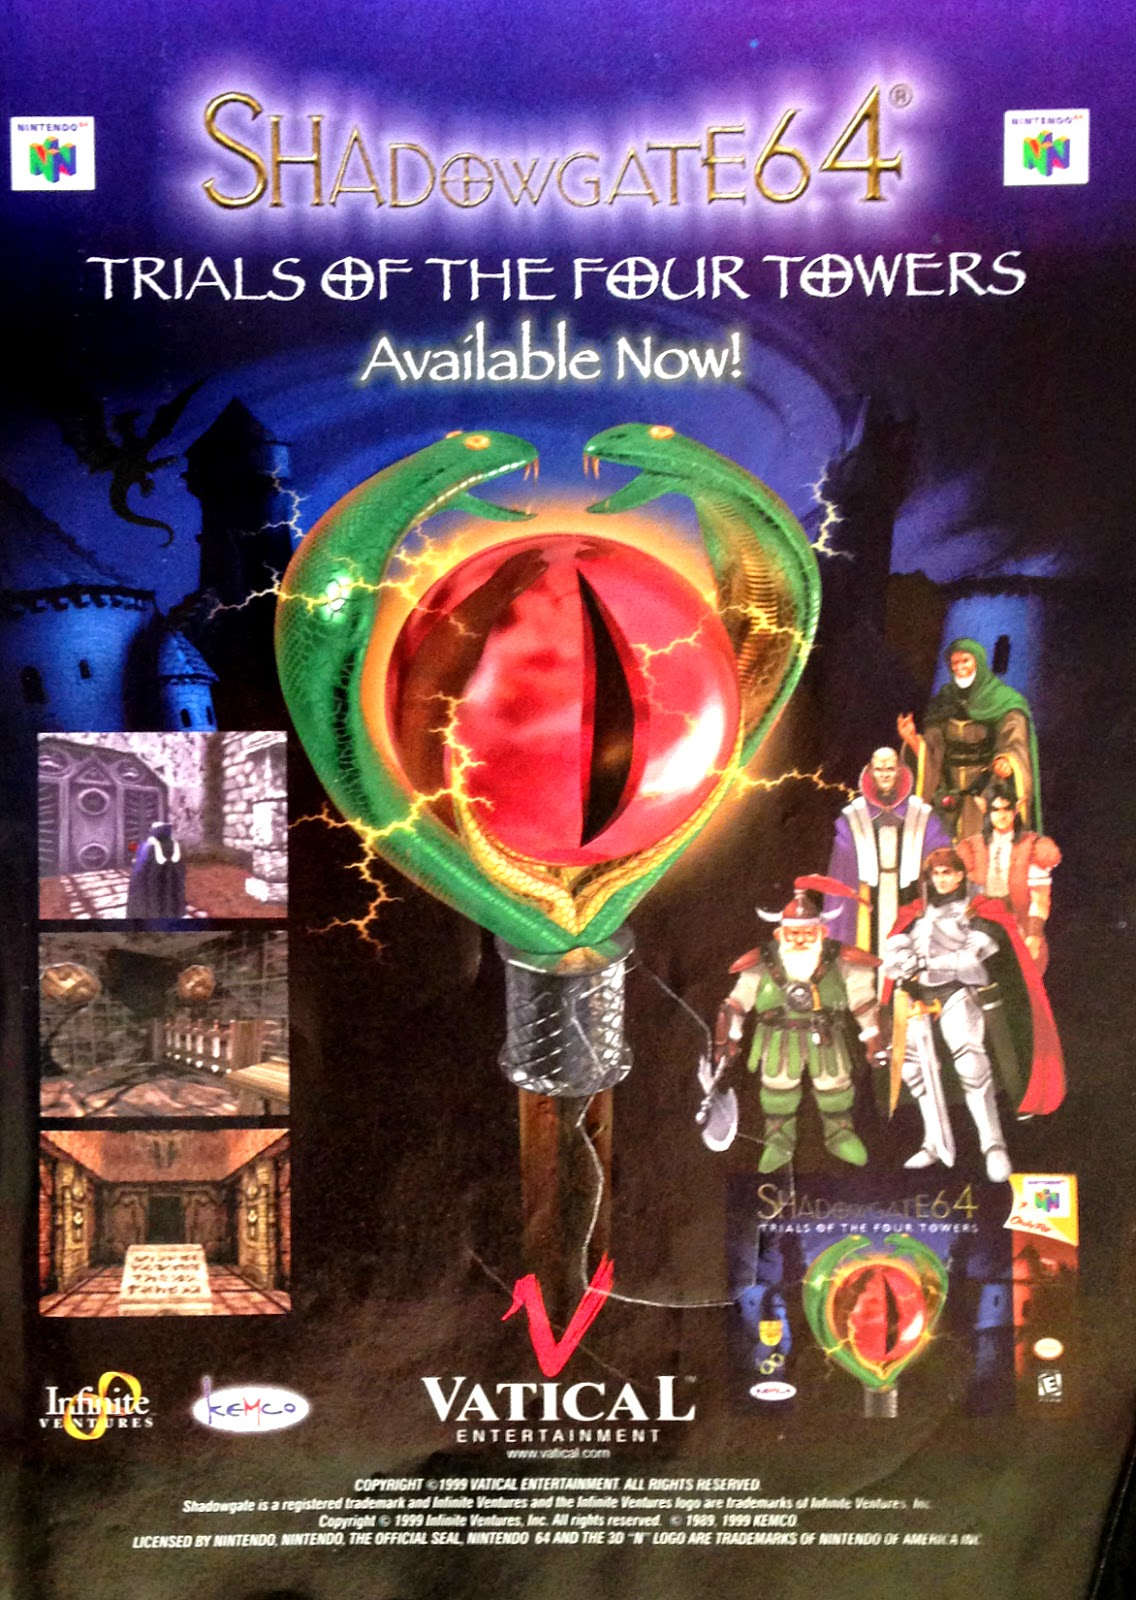 Shadowgate 64 Trial of the Four Towers advertisement